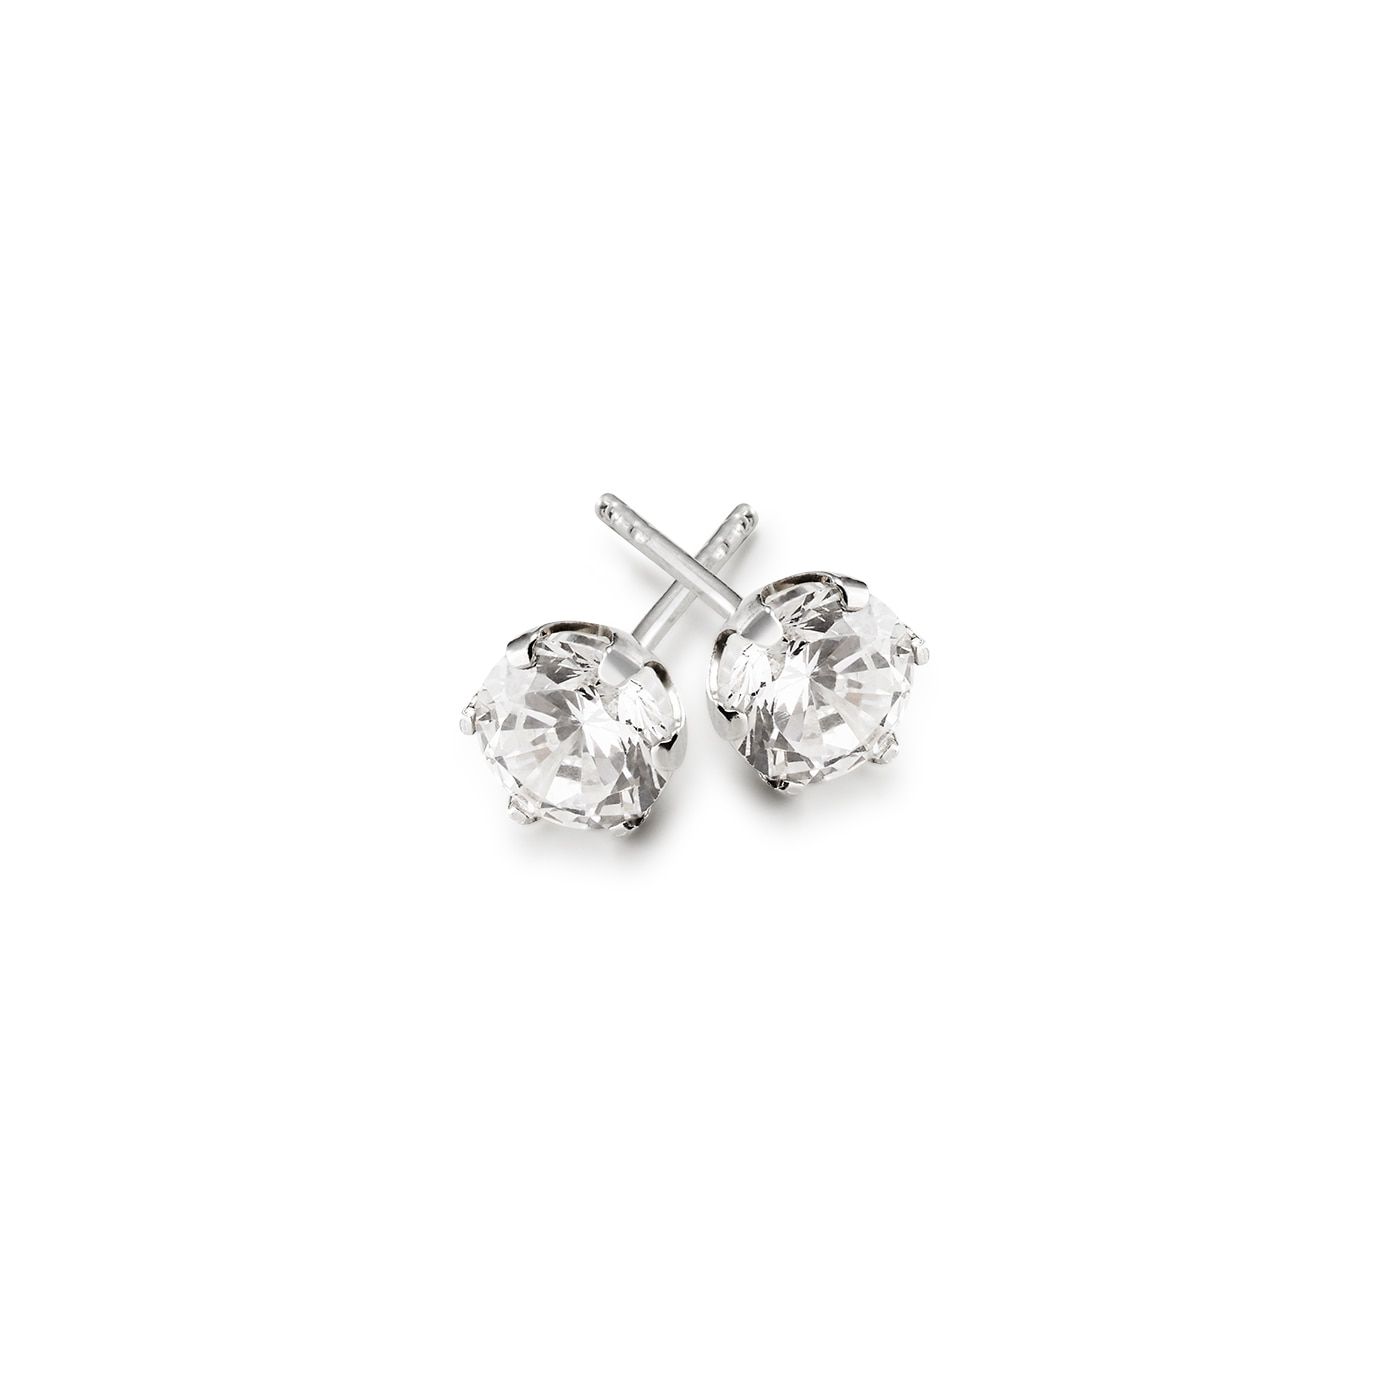 Studs Cz earrings S